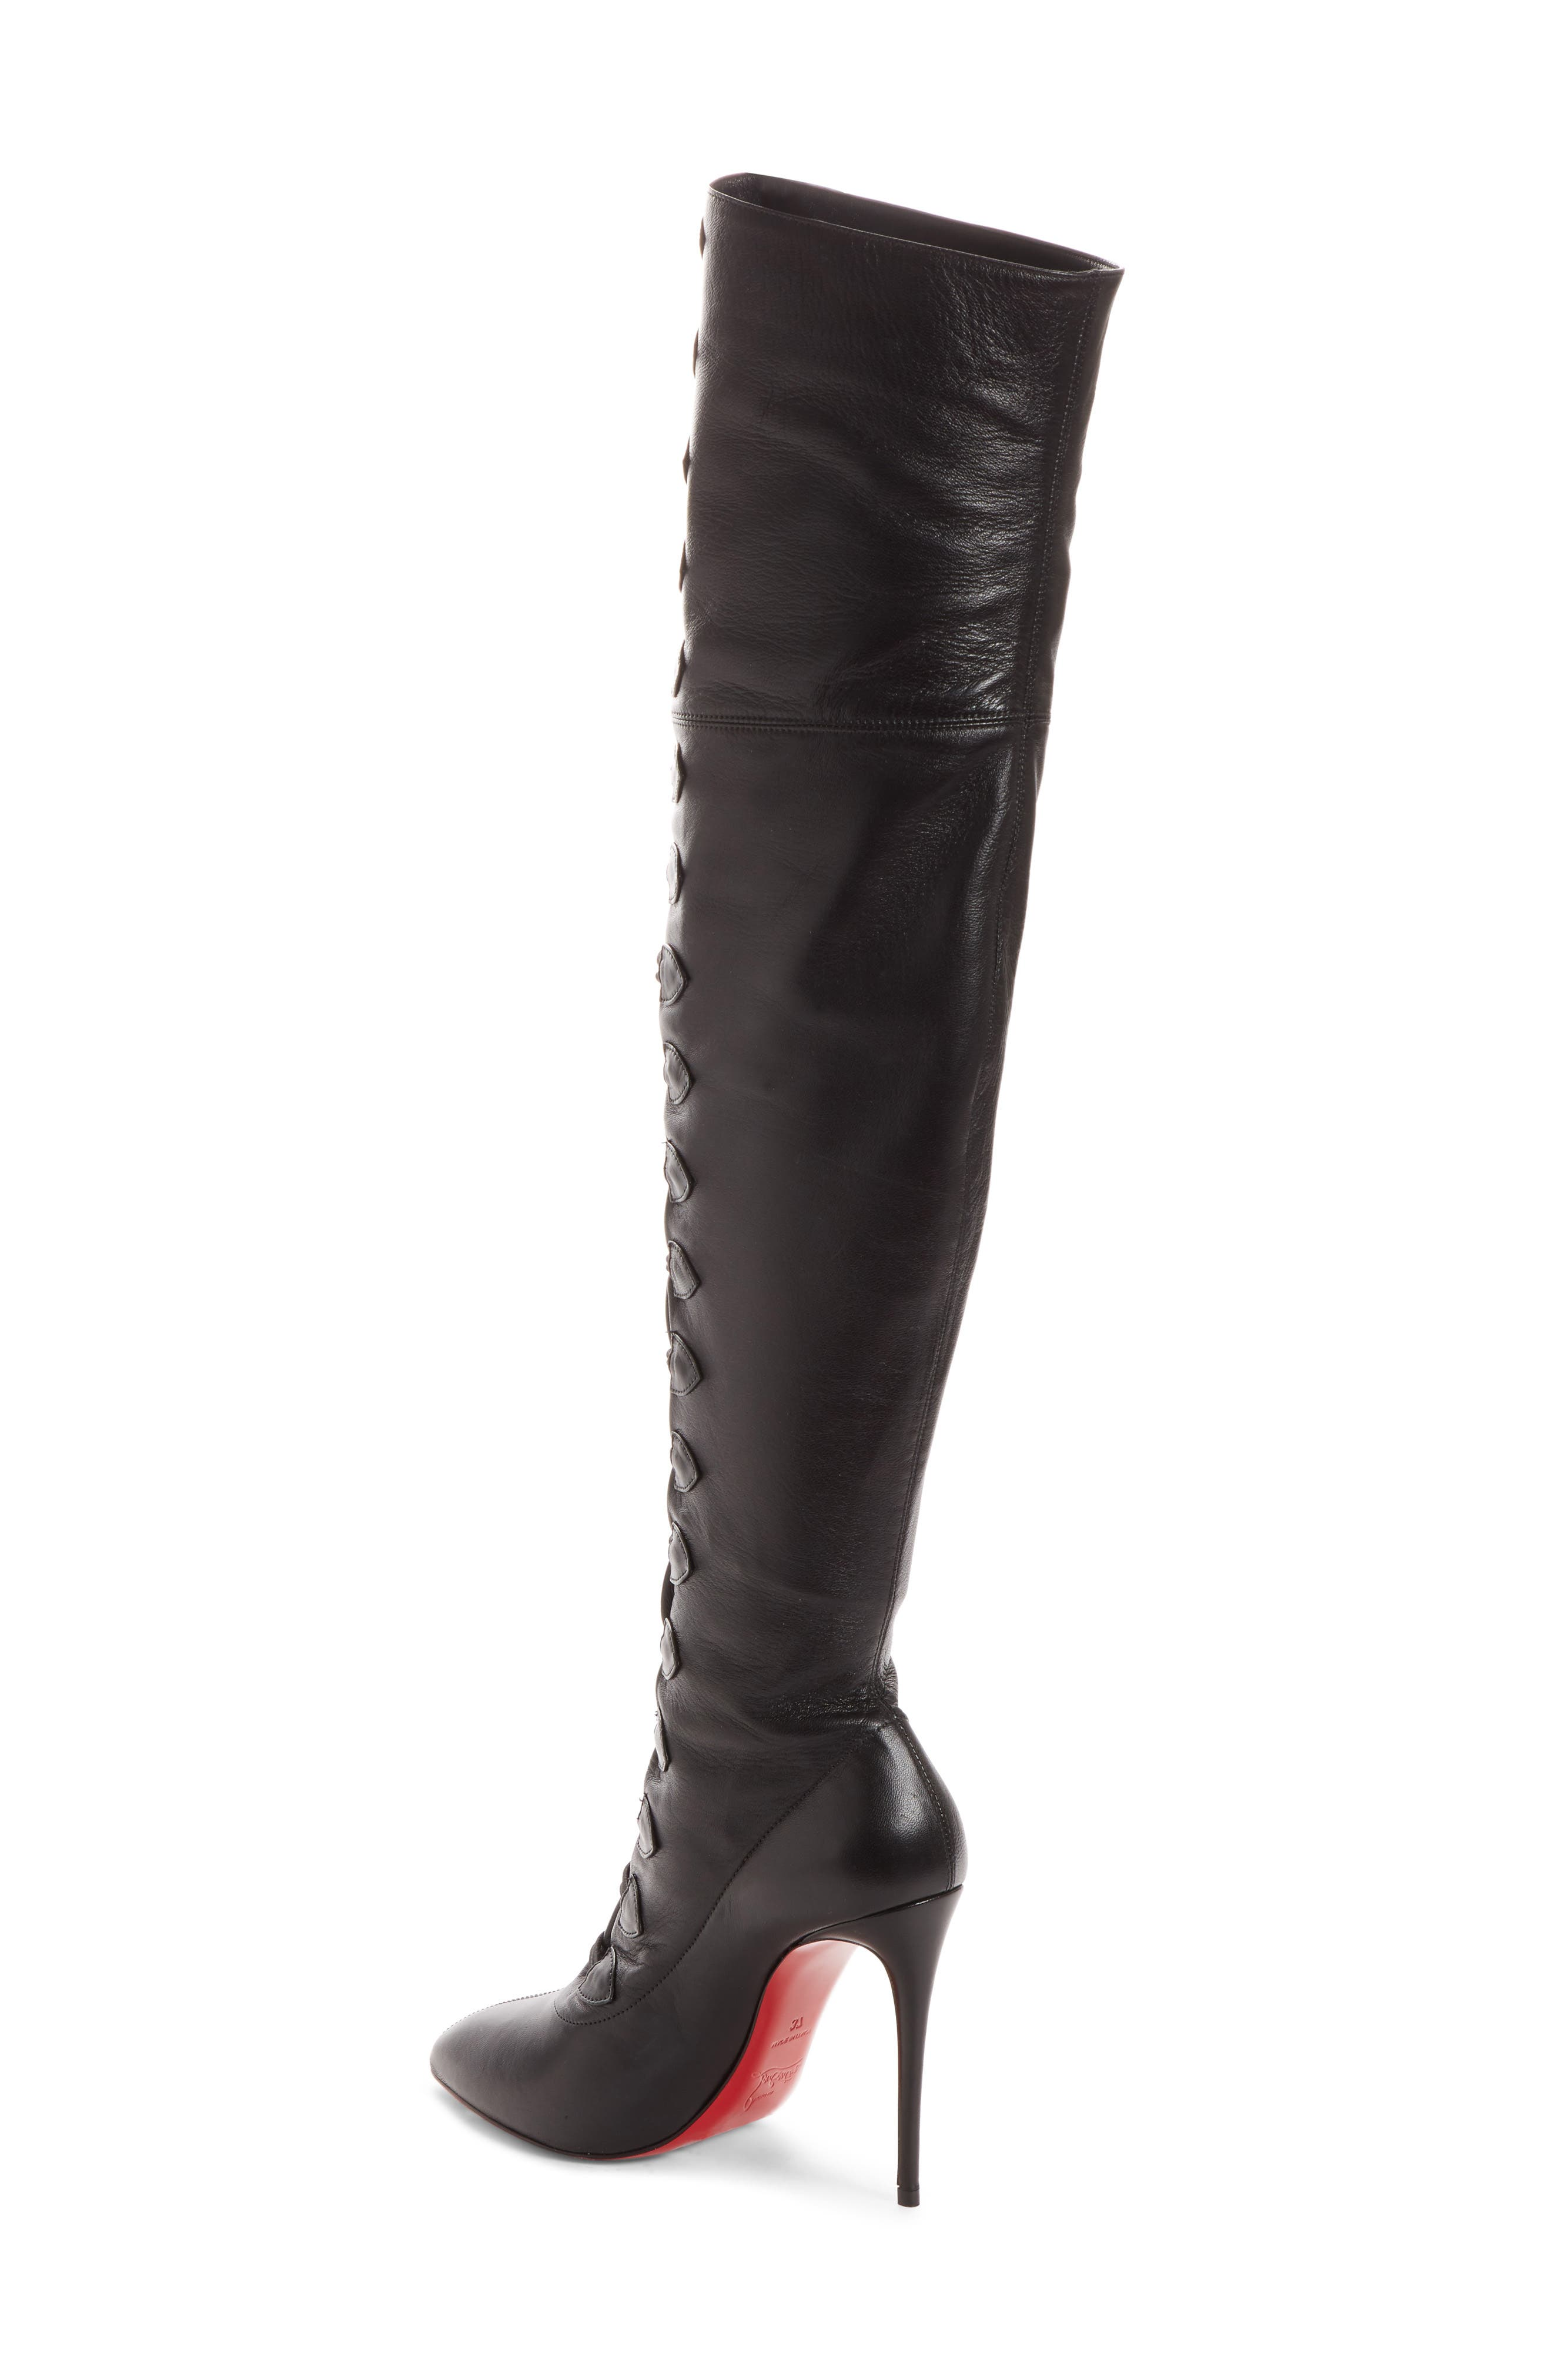 French Tutu Over the Knee Boot,                             Alternate thumbnail 2, color,                             001